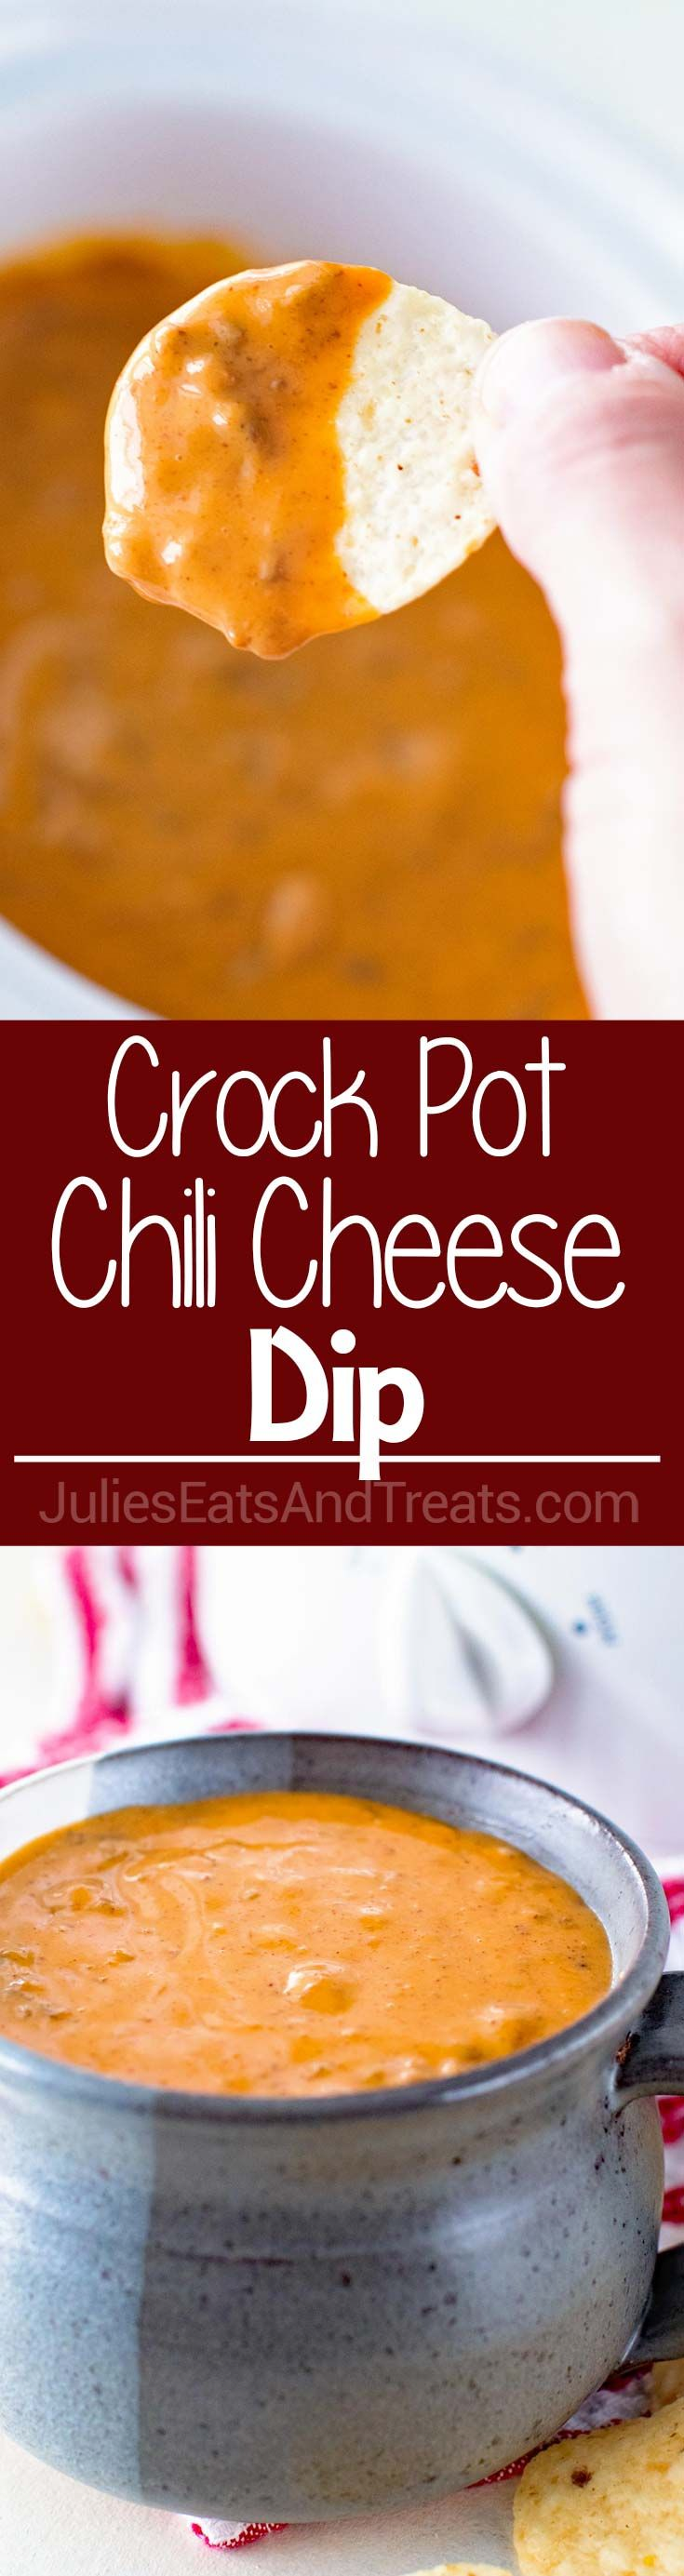 Crock Pot Chili Cheese Dip ~ Two Ingredient Chili Cheese Dip Perfect for a Quick, Easy Appetizer at Parties! via @julieseats